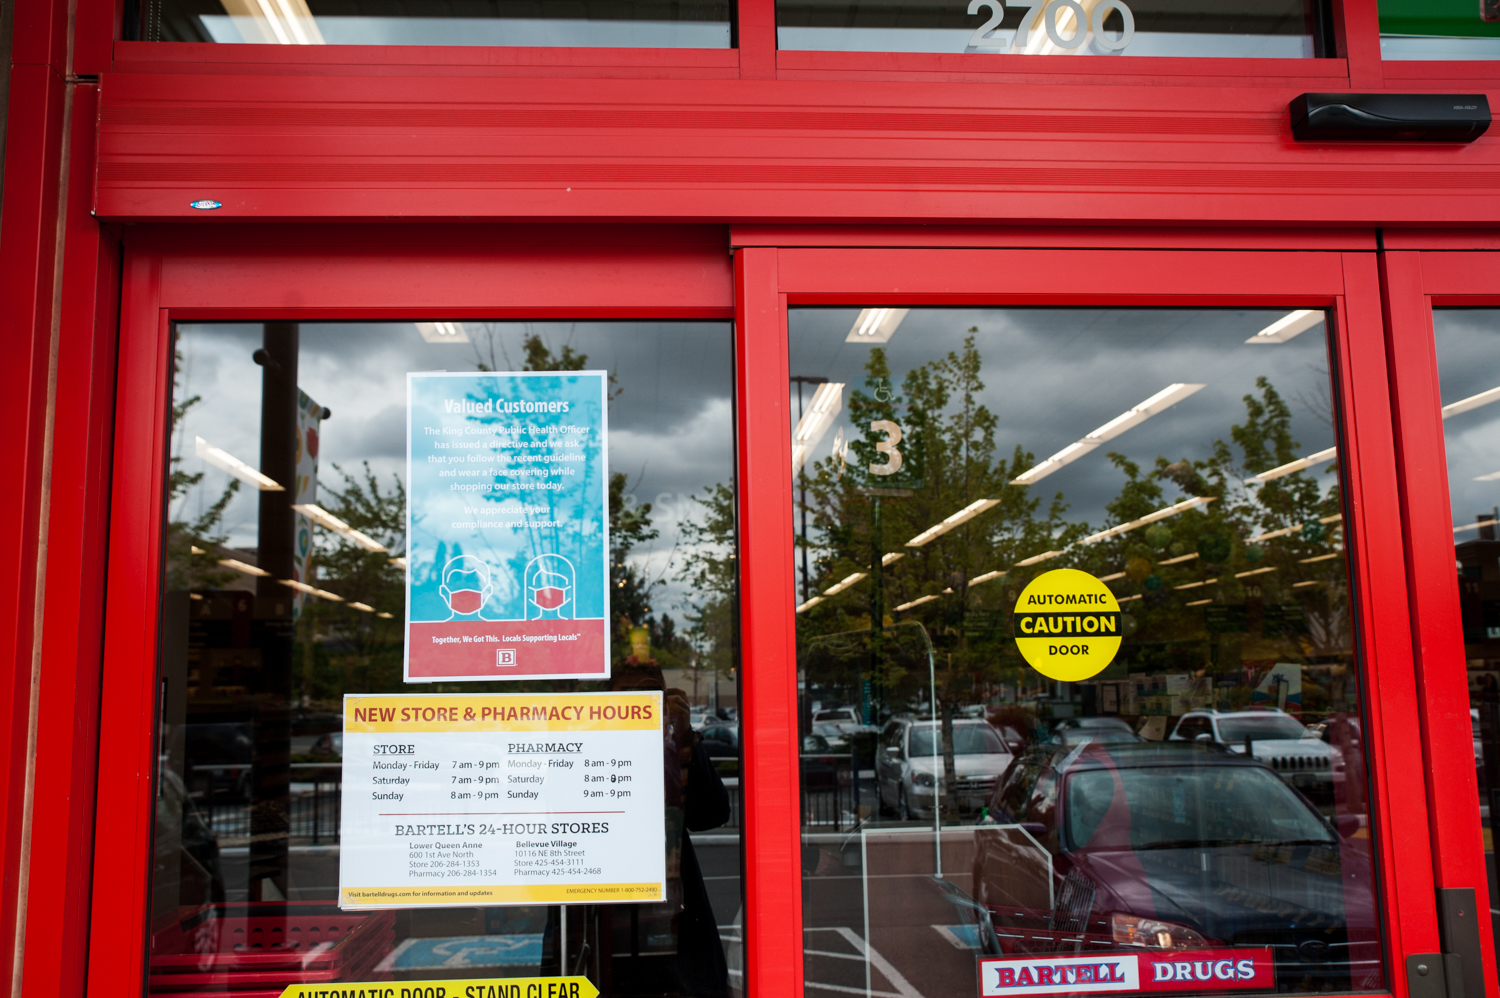 <p>In what is likely the understatement of the year, grocery stores look a little bit different these days. We were curious to document the lines outside several different grocery stores in the Seattle area, to see the different measures taken (inside and outside) to keep people safe while providing one of the most essential services there is: shopping for food. (Image: Elizabeth Crook / Seattle Refined)</p>